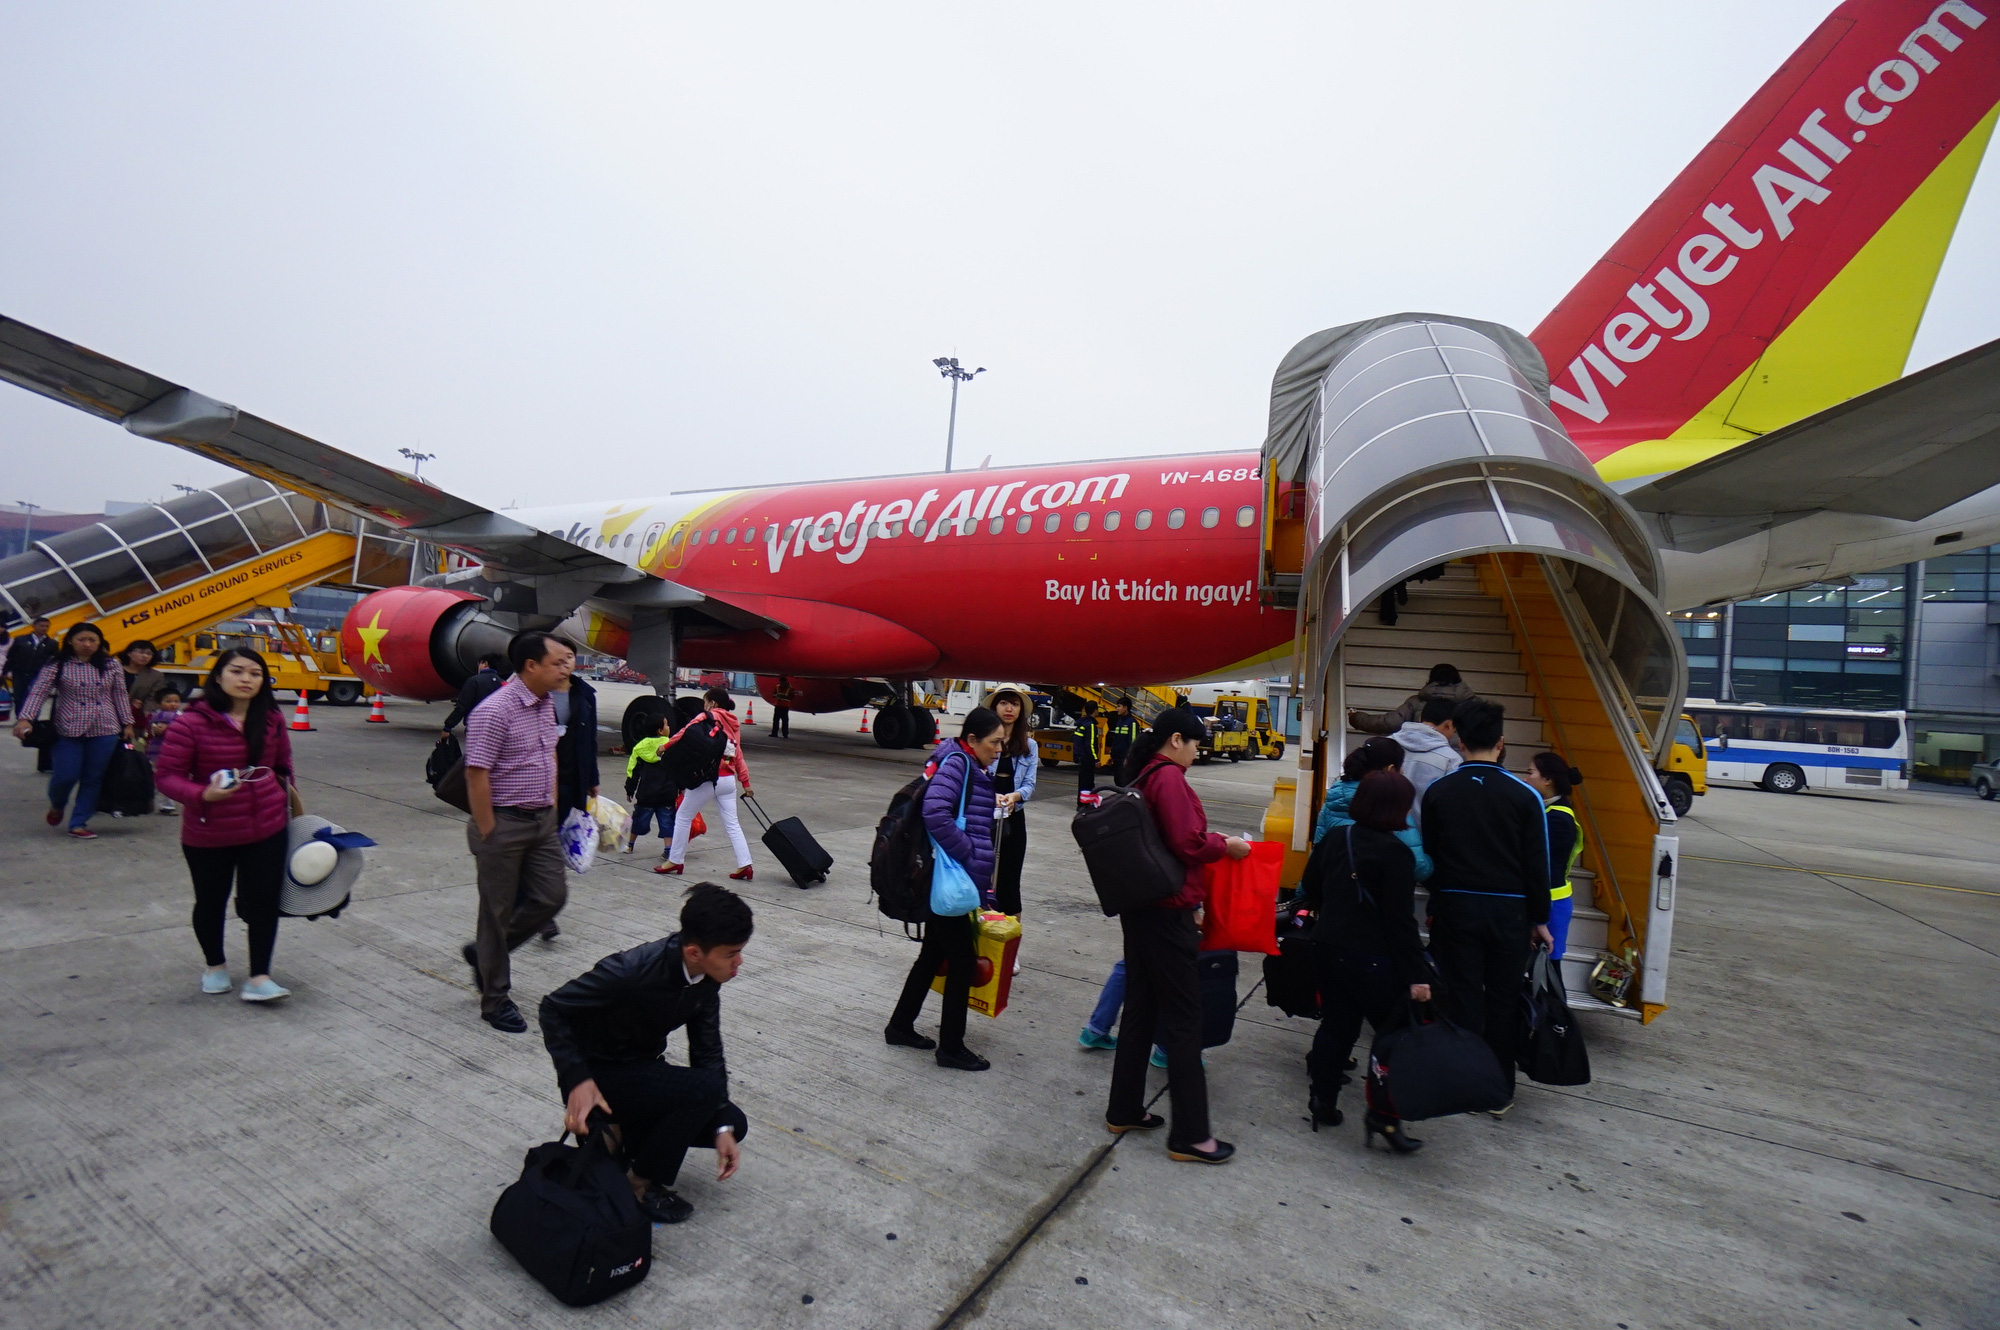 Passenger board a Vietjet flight at Tan Son Nhat International Airport in Ho Chi Minh City. Photo: Quang Dinh / Tuoi Tre